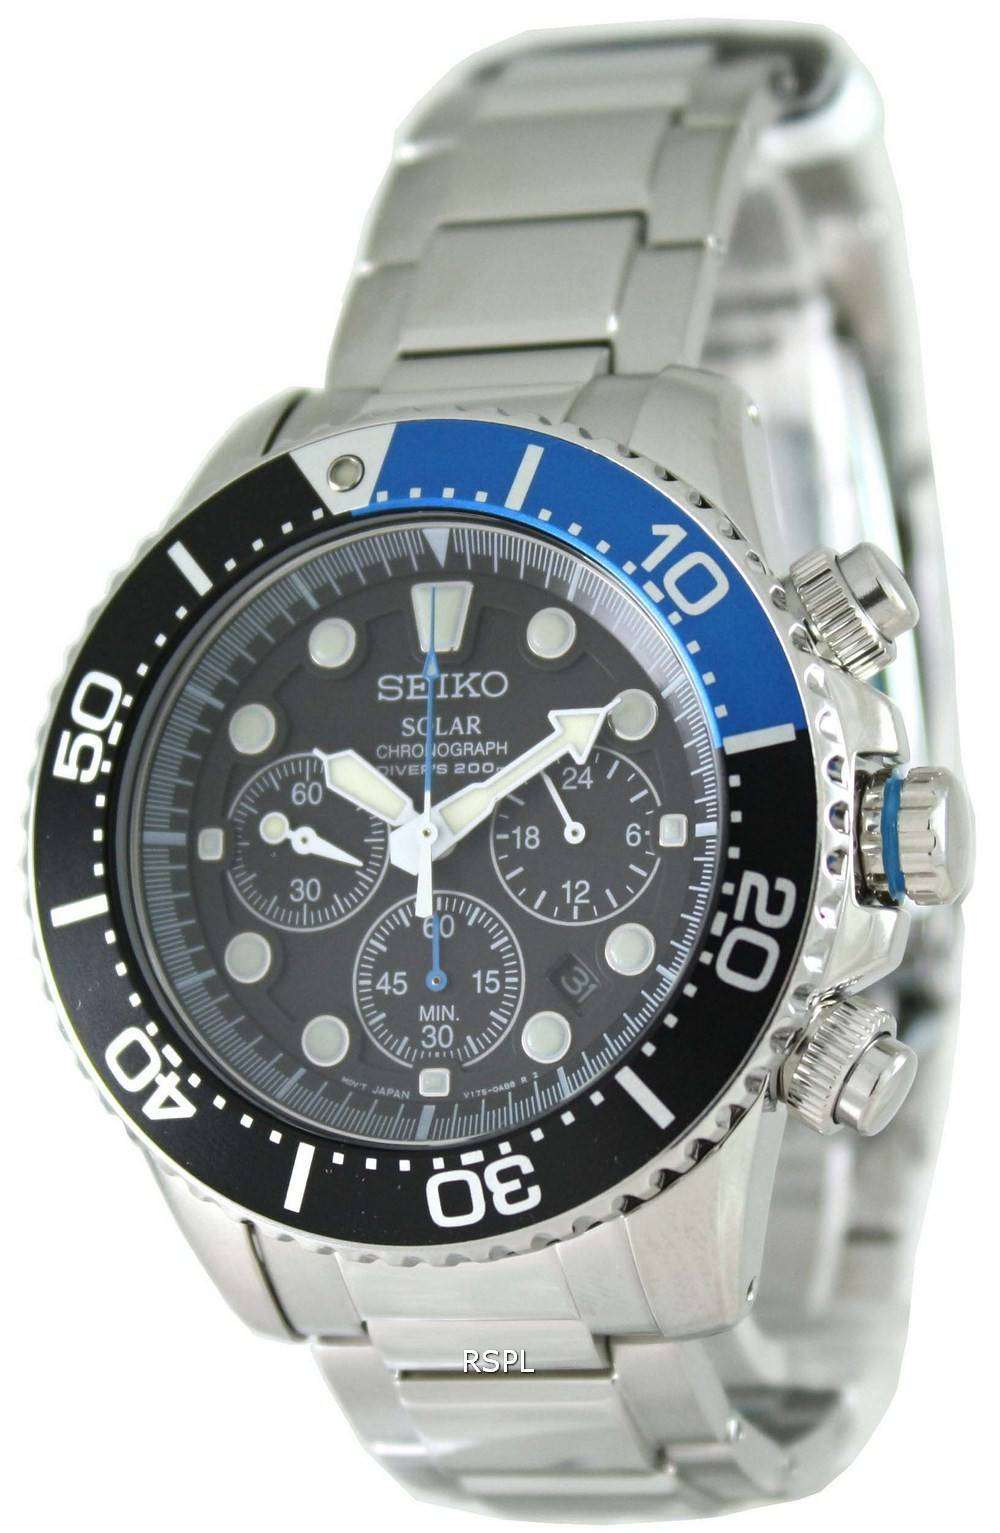 Tag Heuer Uk >> Seiko Solar Chronograph Divers SSC017P1 Mens Watch - CityWatches.co.uk